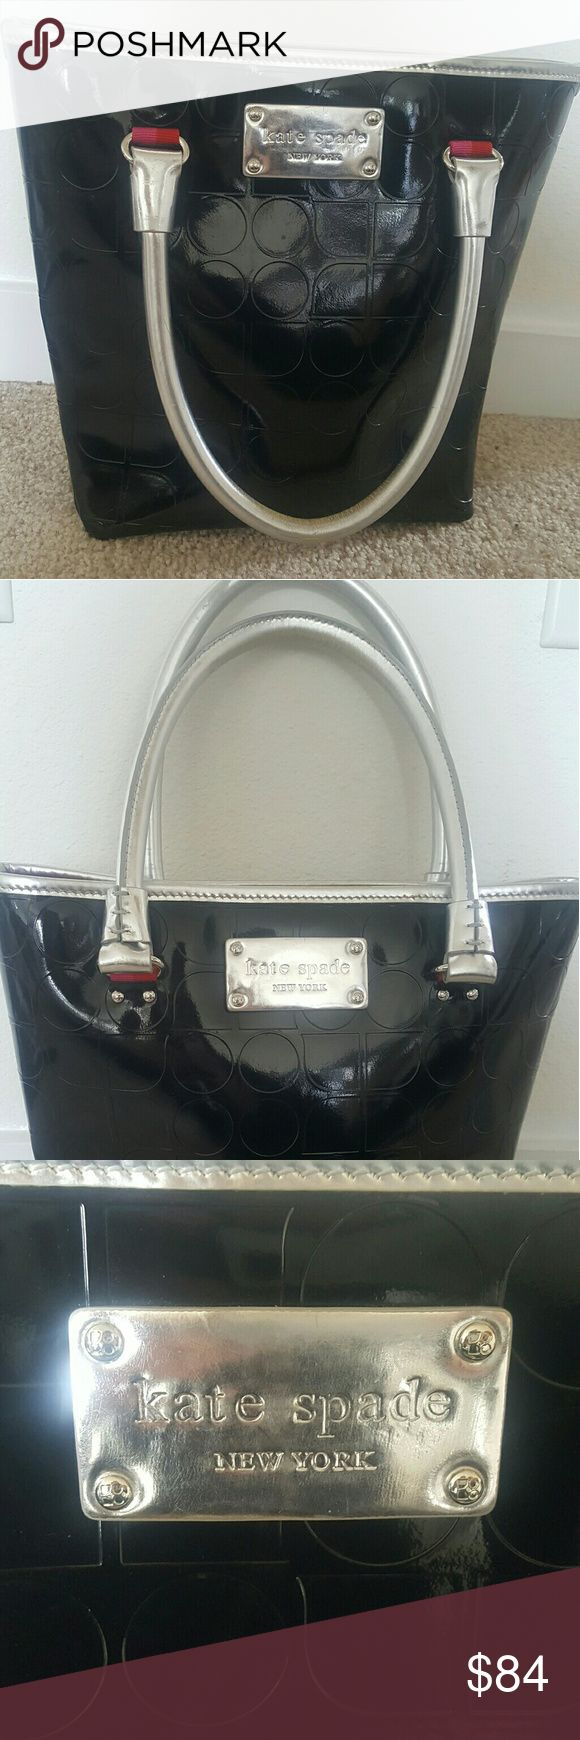 "Kate Spade Black Patent Leather Bag Black Patent Leather ""Daisy Shopper: Gansevoort Noel"" Bag with silver trim and red interior. Used <10 times. Great condition! kate spade Bags Shoulder Bags"